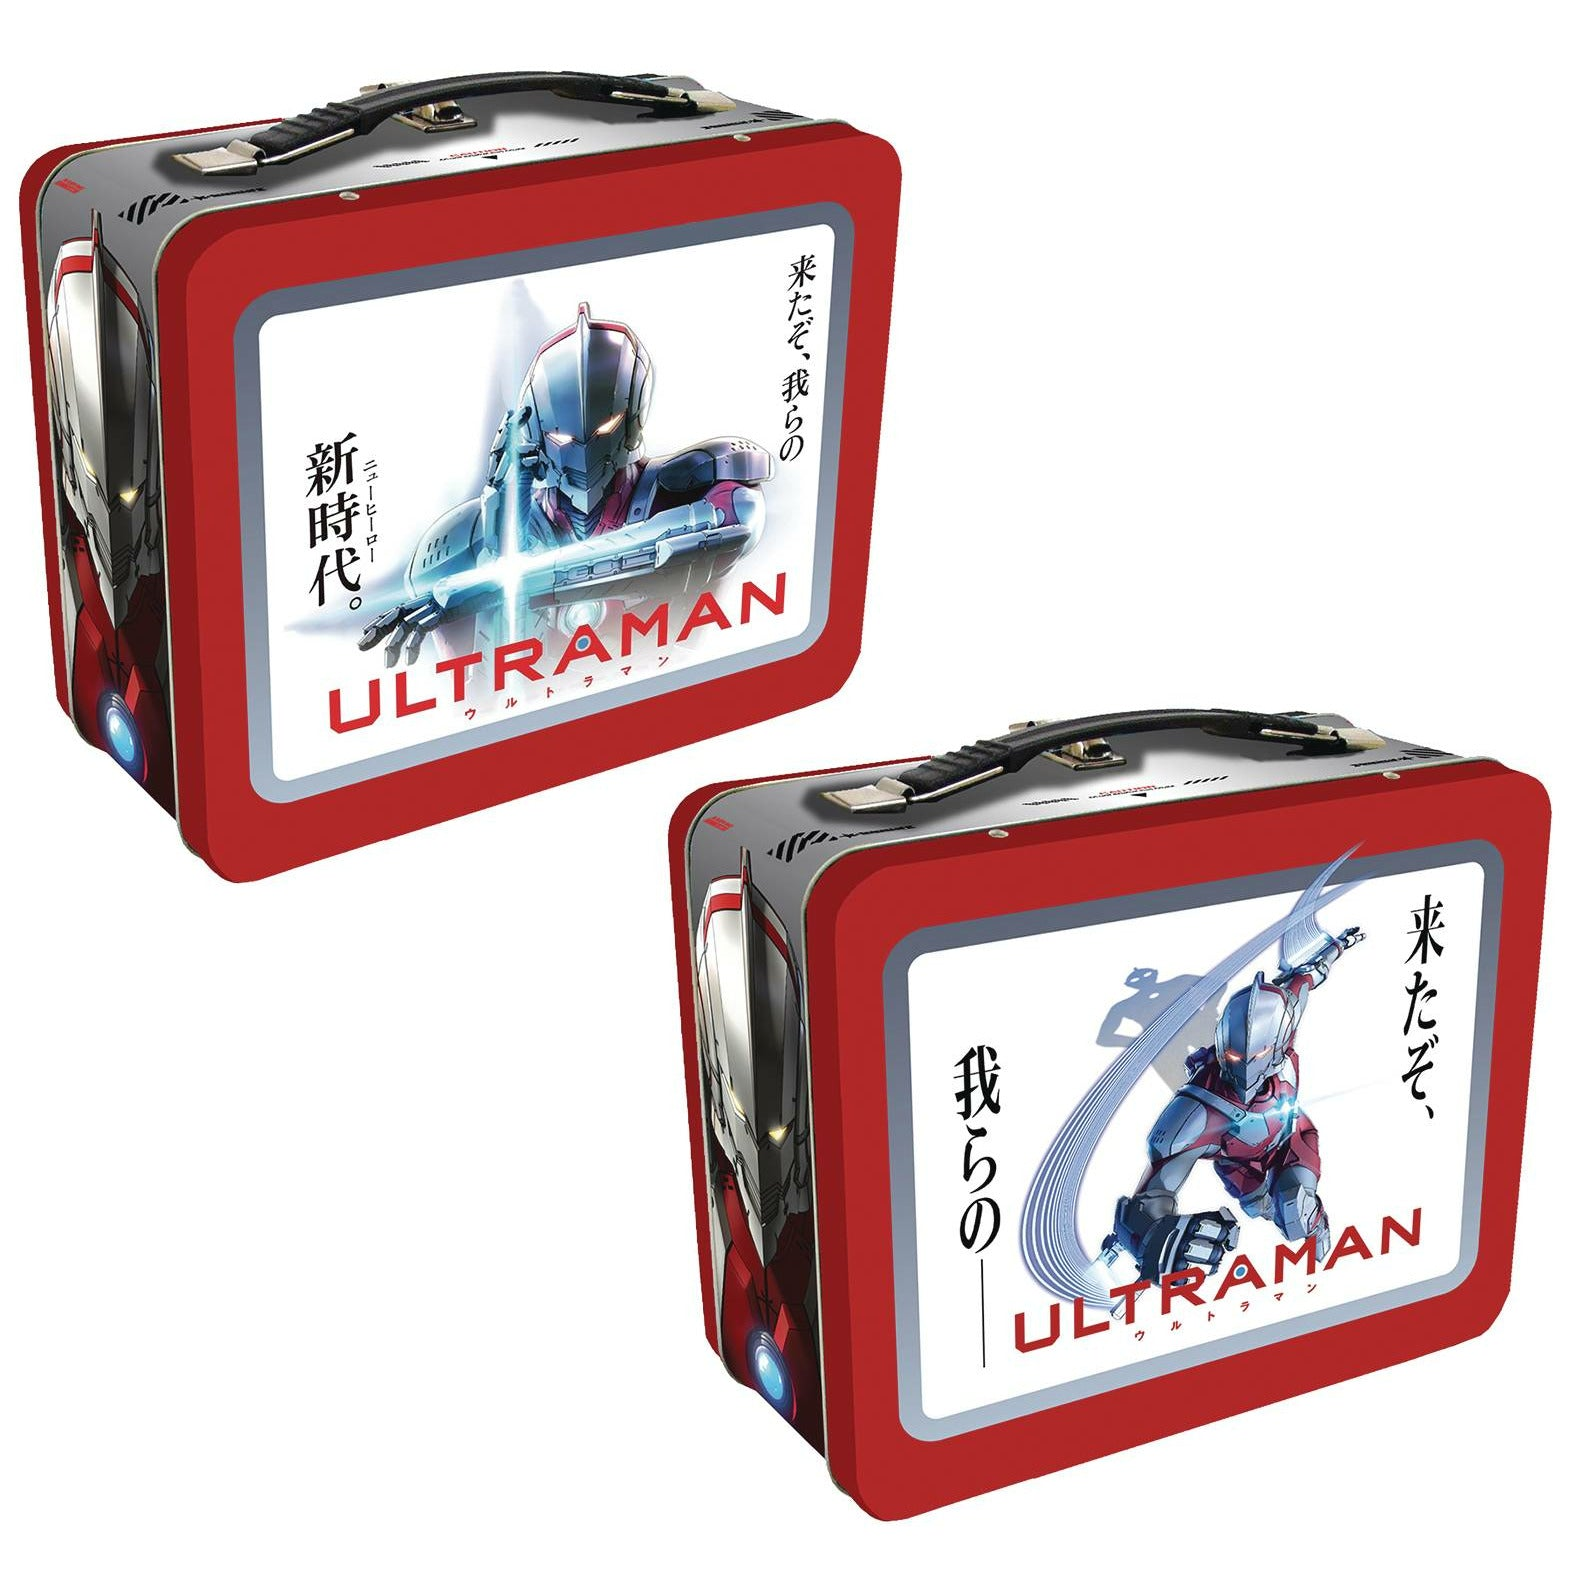 Ultraman Animated Series Ultraman Tin Tote